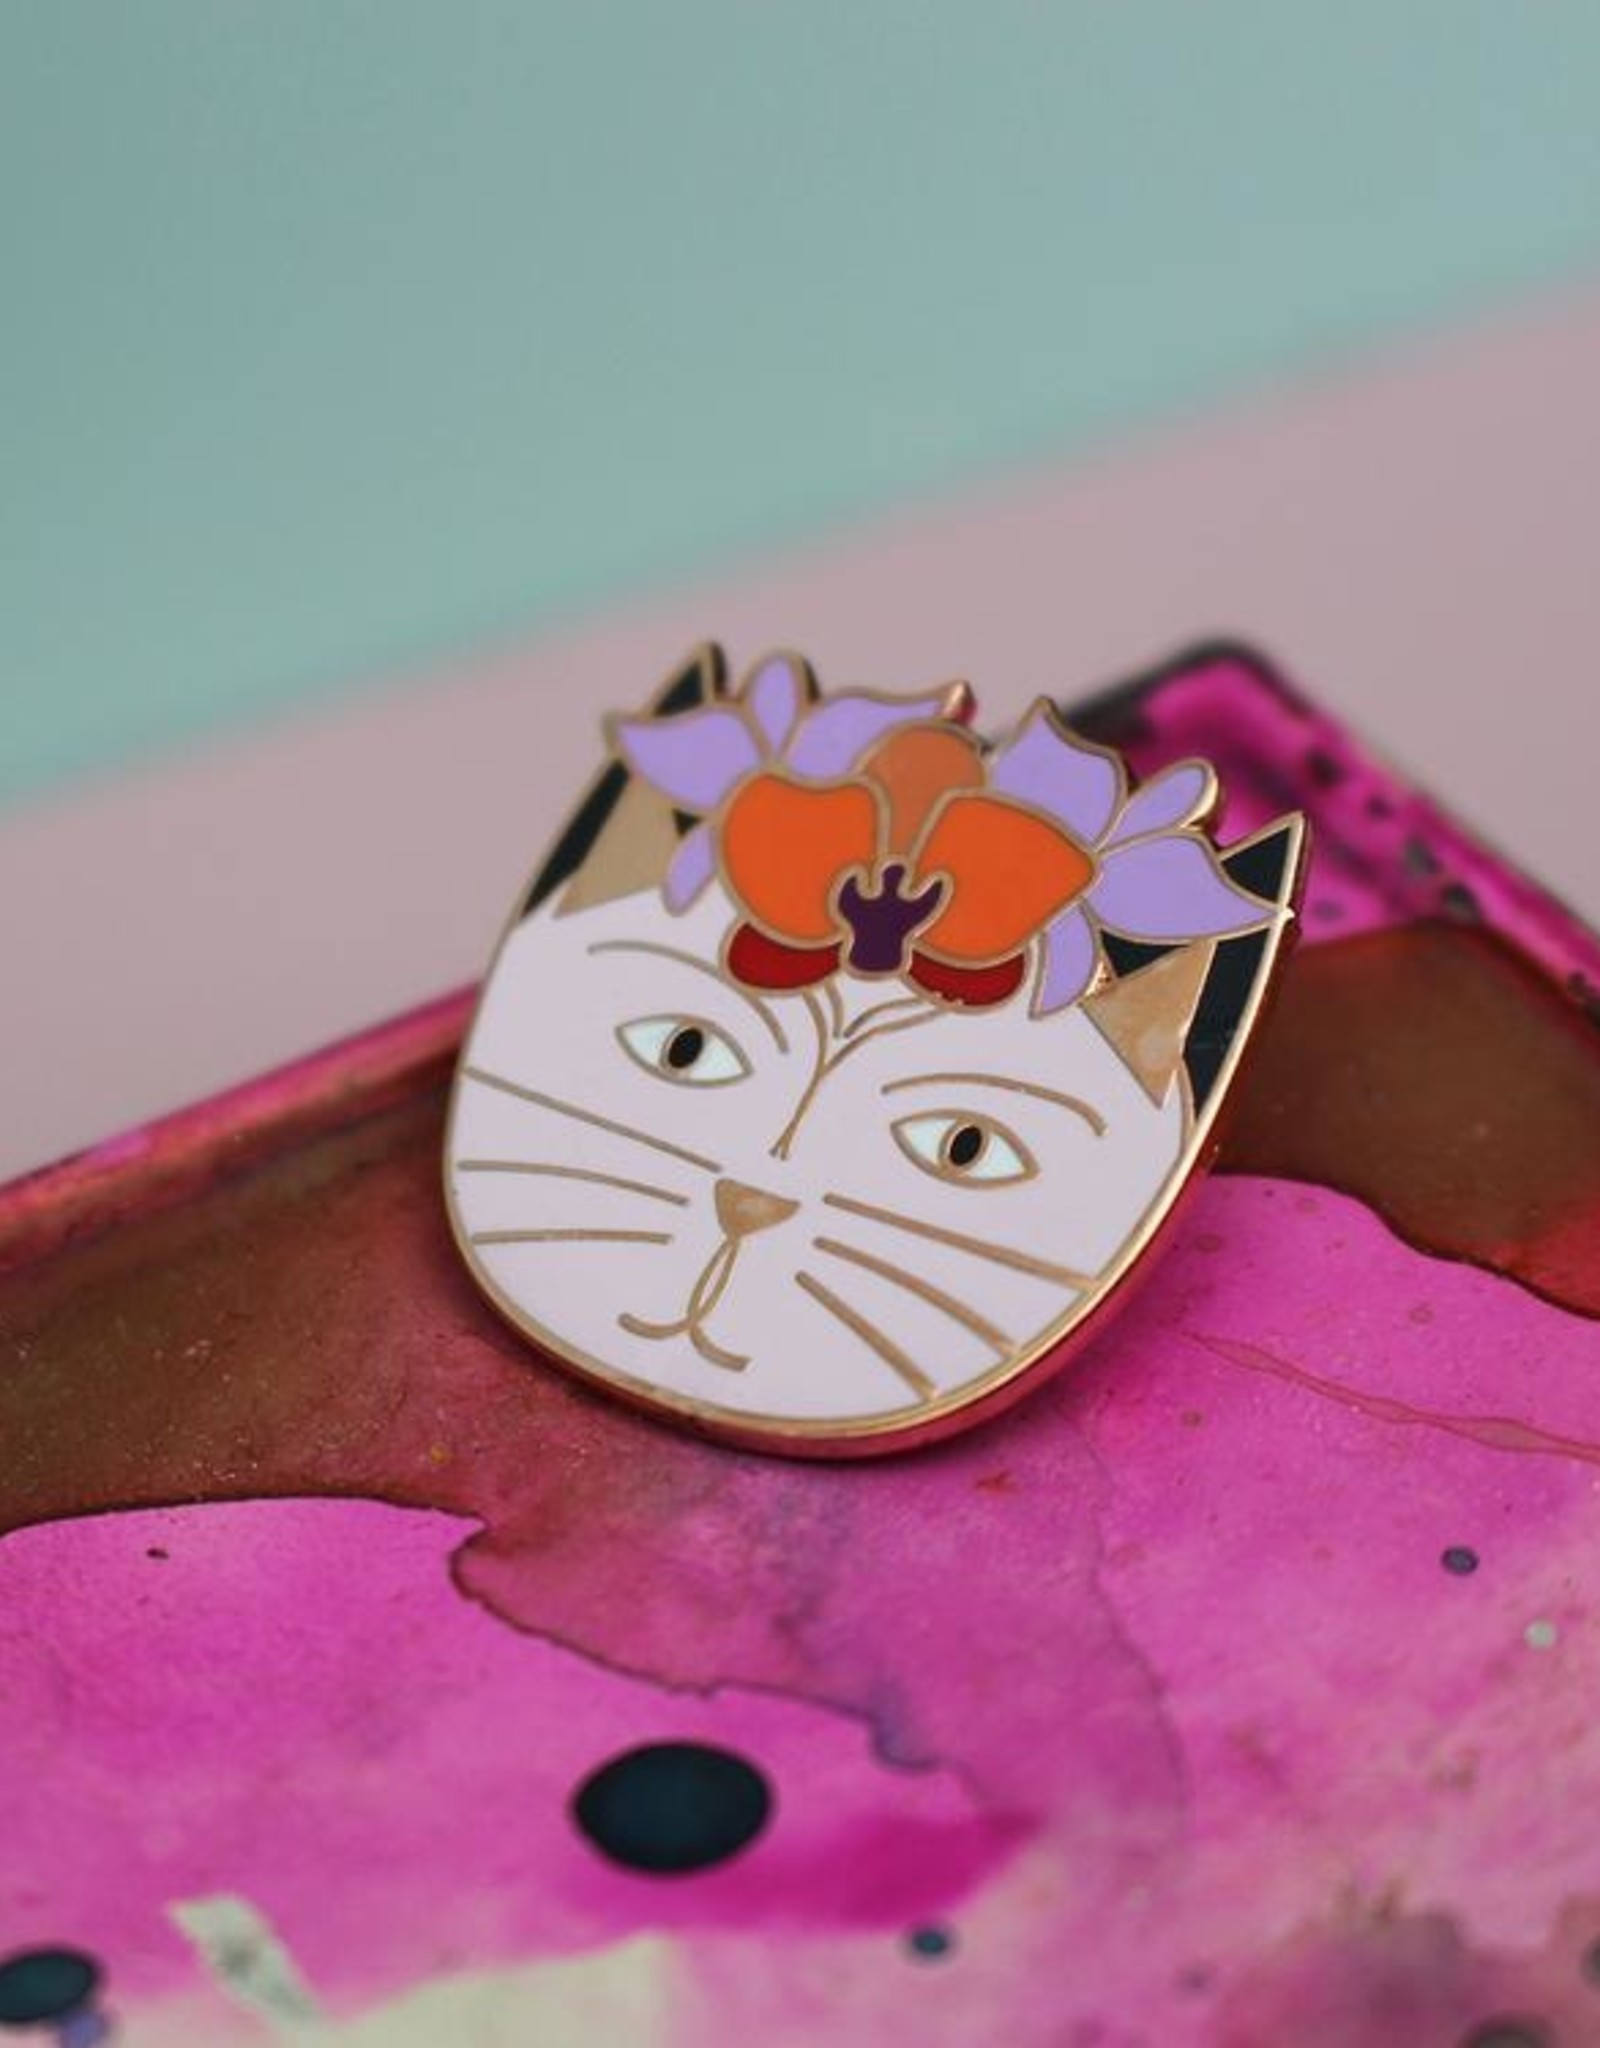 Niaski Niaski - Georgia o'kitty pin